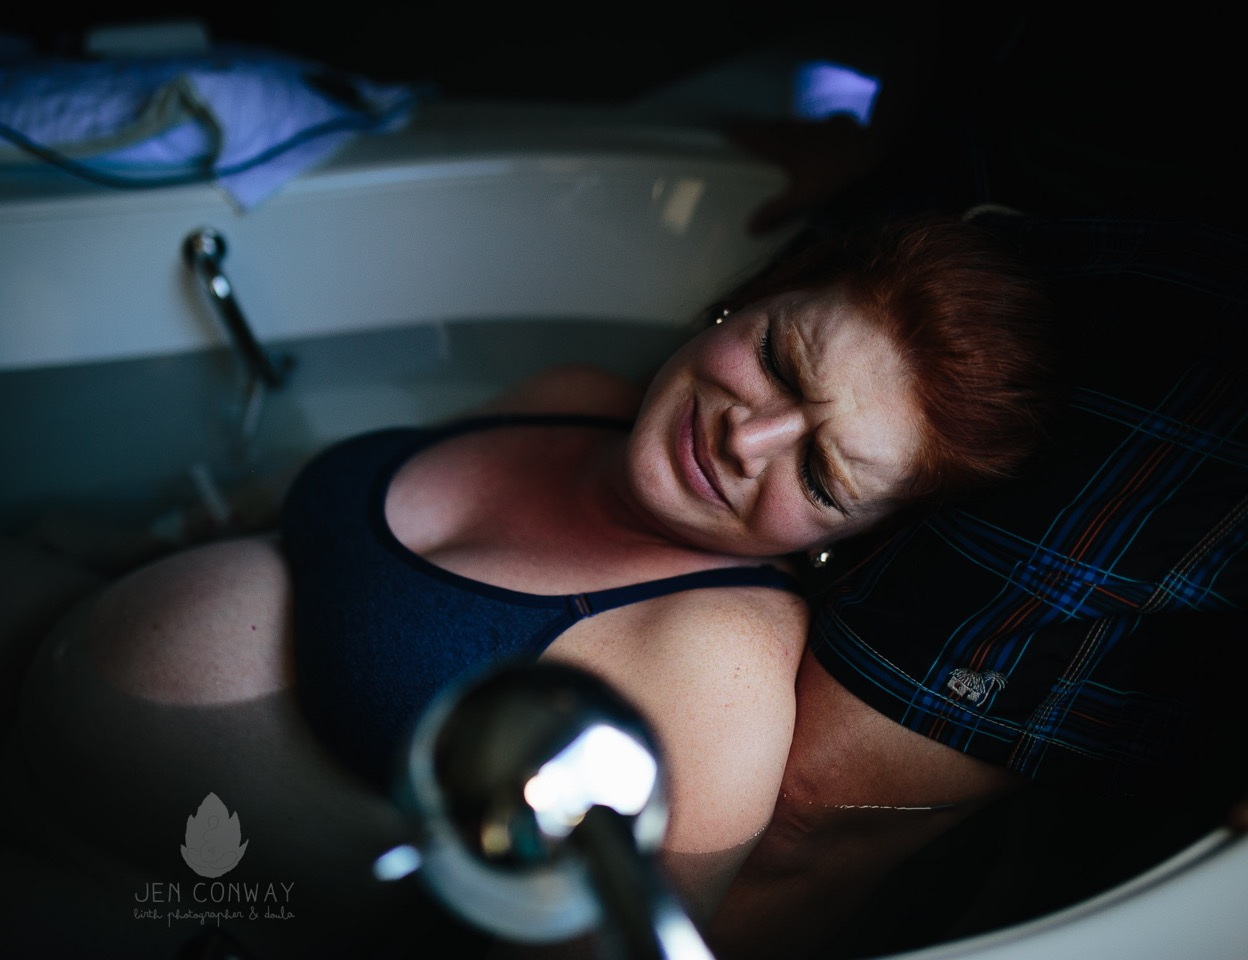 """""""This Mama is an ER nurse. She is insanely tough. She labored all night by herself and called me when she was a 9cm. She """"stalled"""" and labored for 9 more hours until her son came earth side.""""   Jen Conway Photography"""